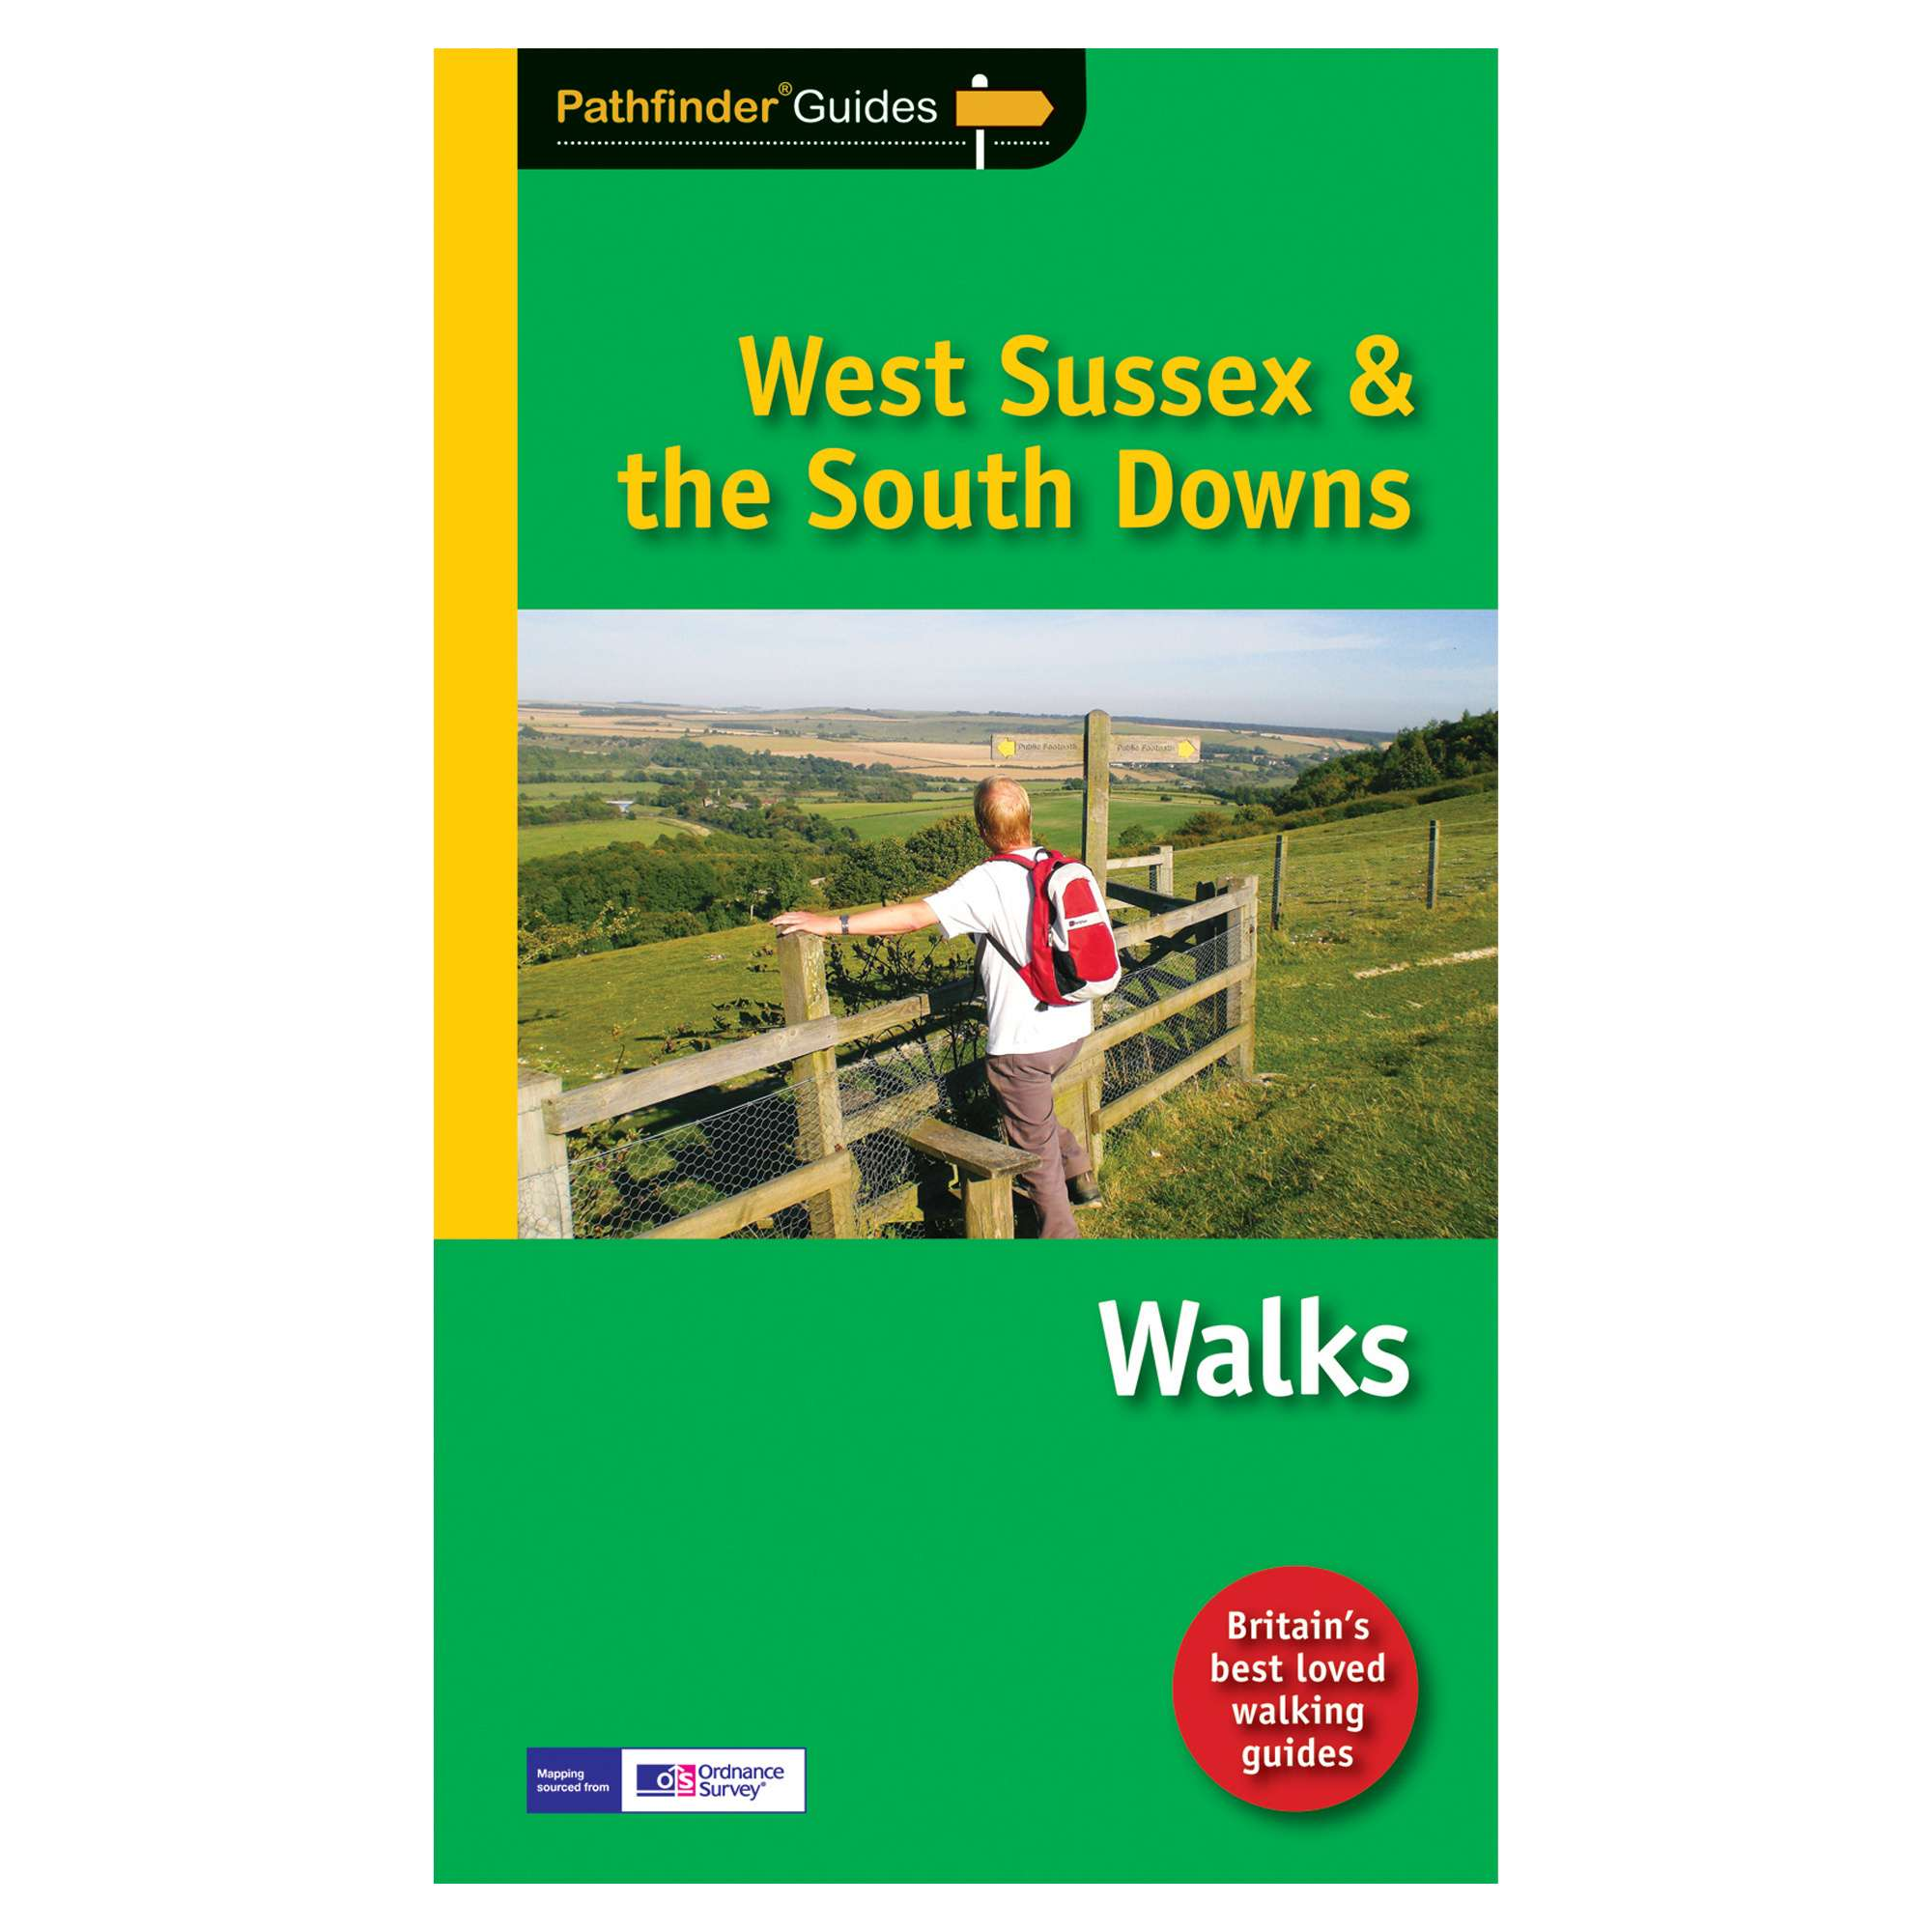 PATHFINDER Pathfinder West Sussex & the South Downs Guide